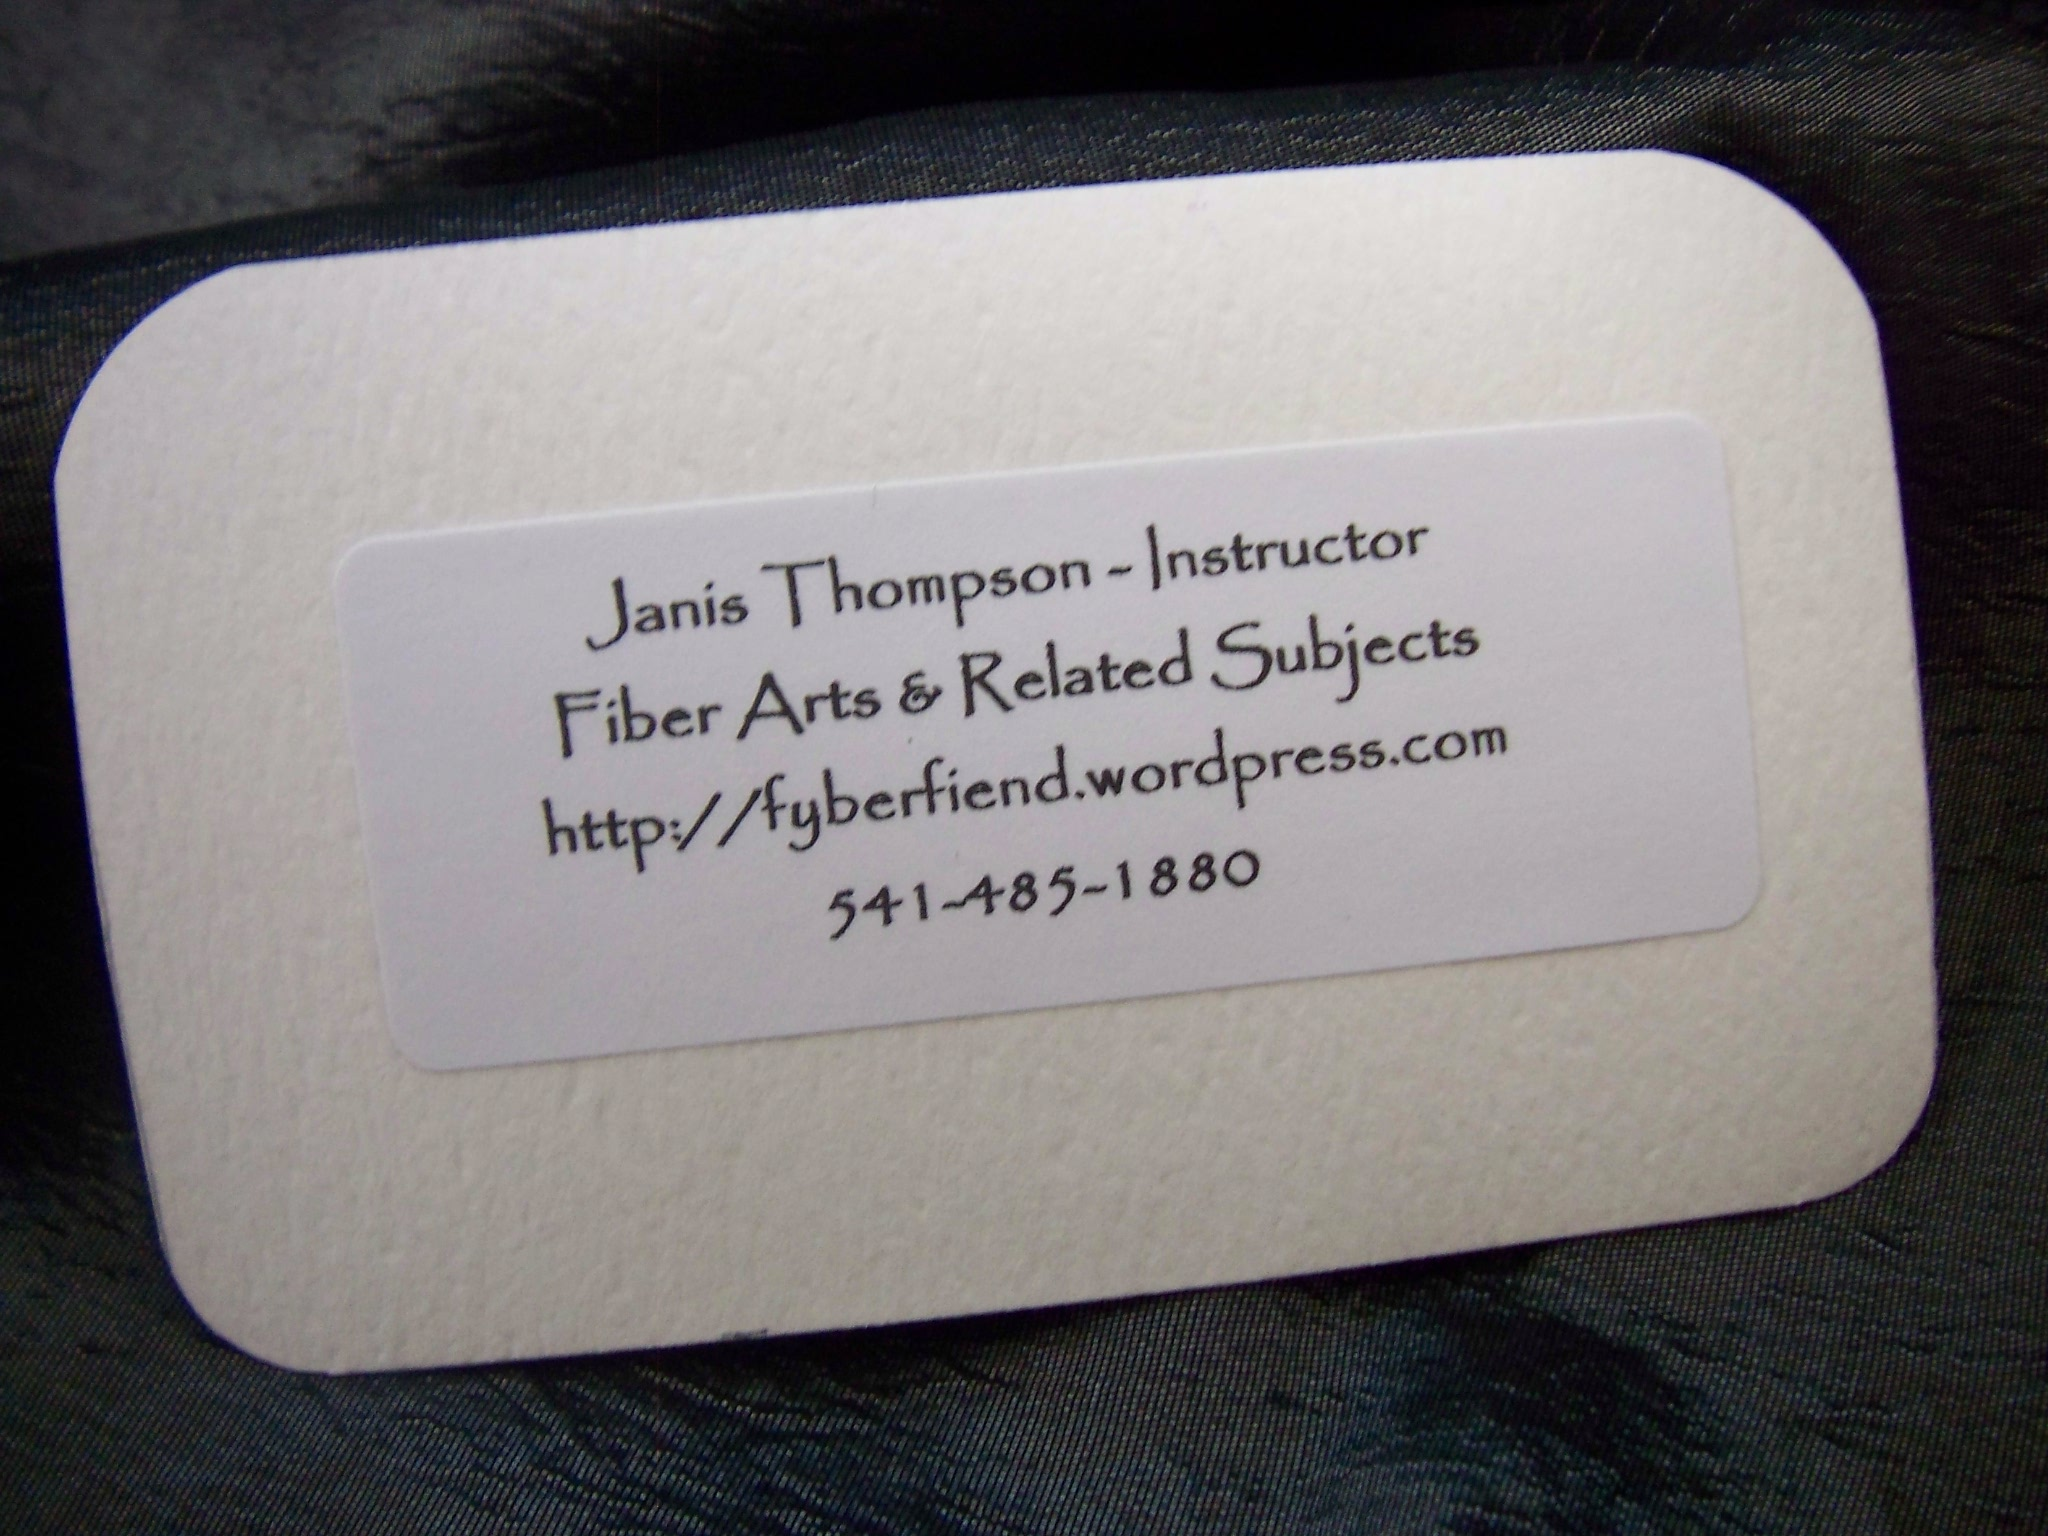 Business card couture adventures in fiber arts janis thompson image image image image image image magicingreecefo Image collections